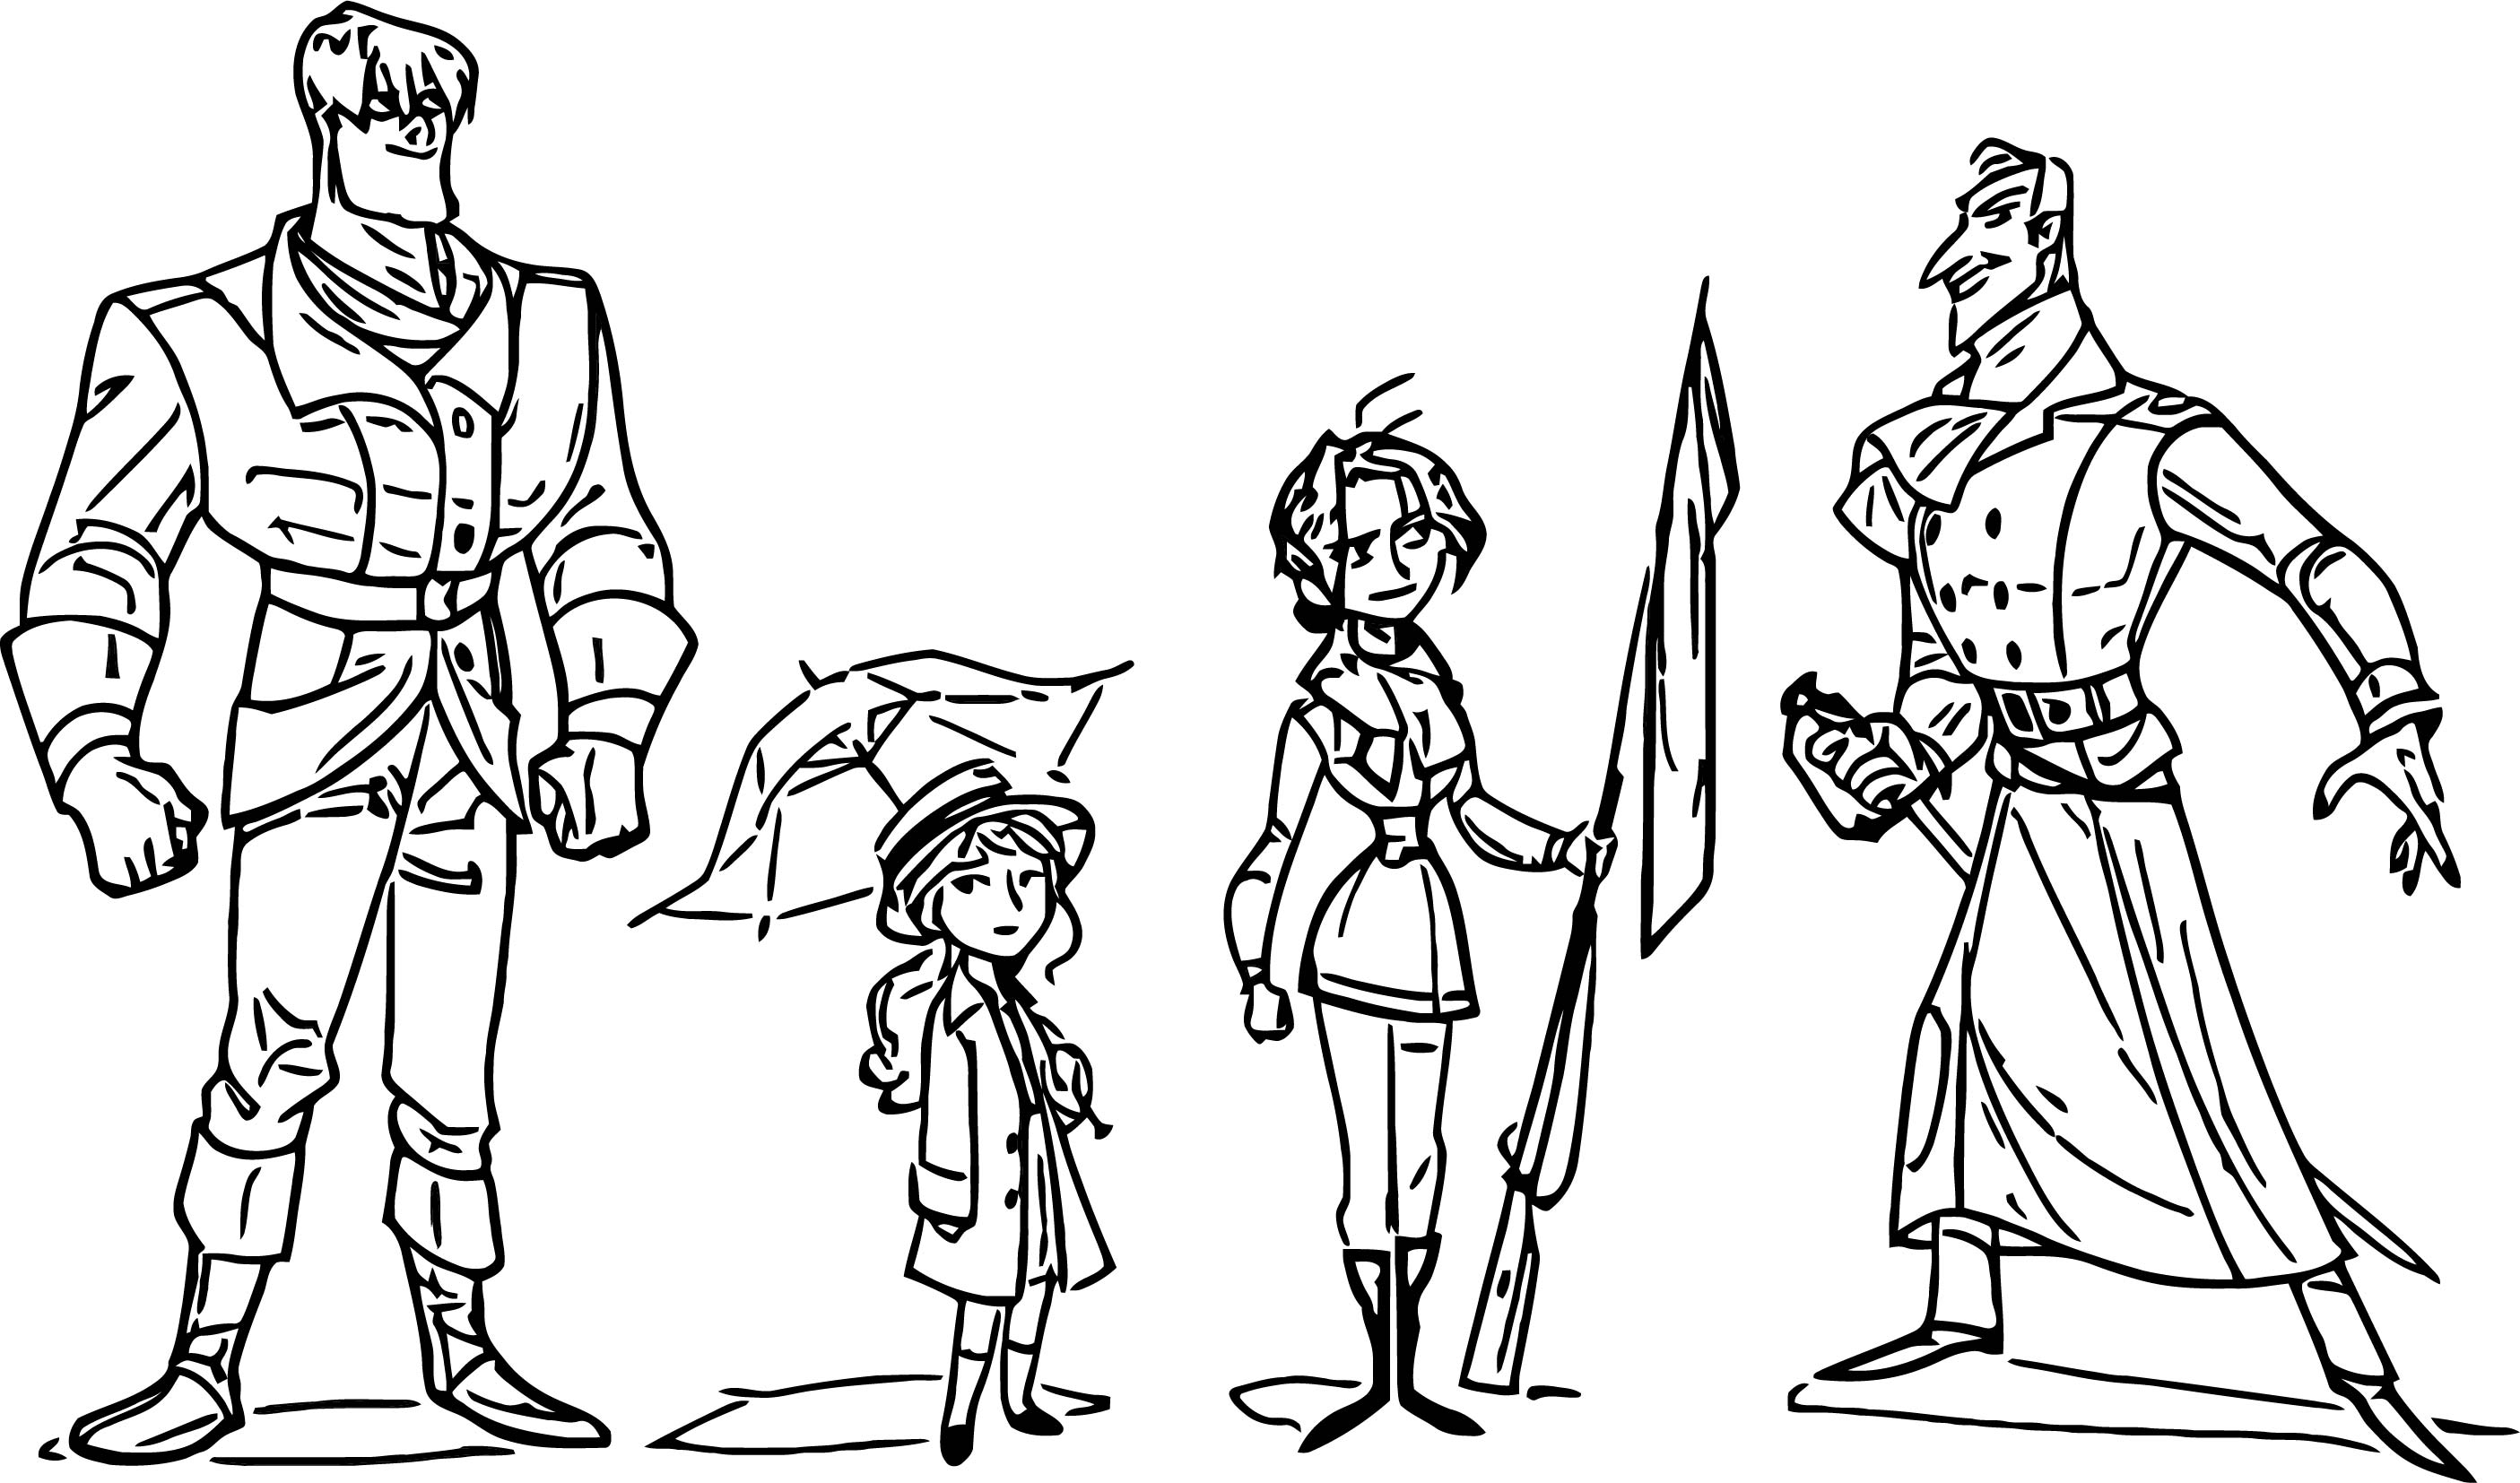 Cartoonized Character Design Coloring Page